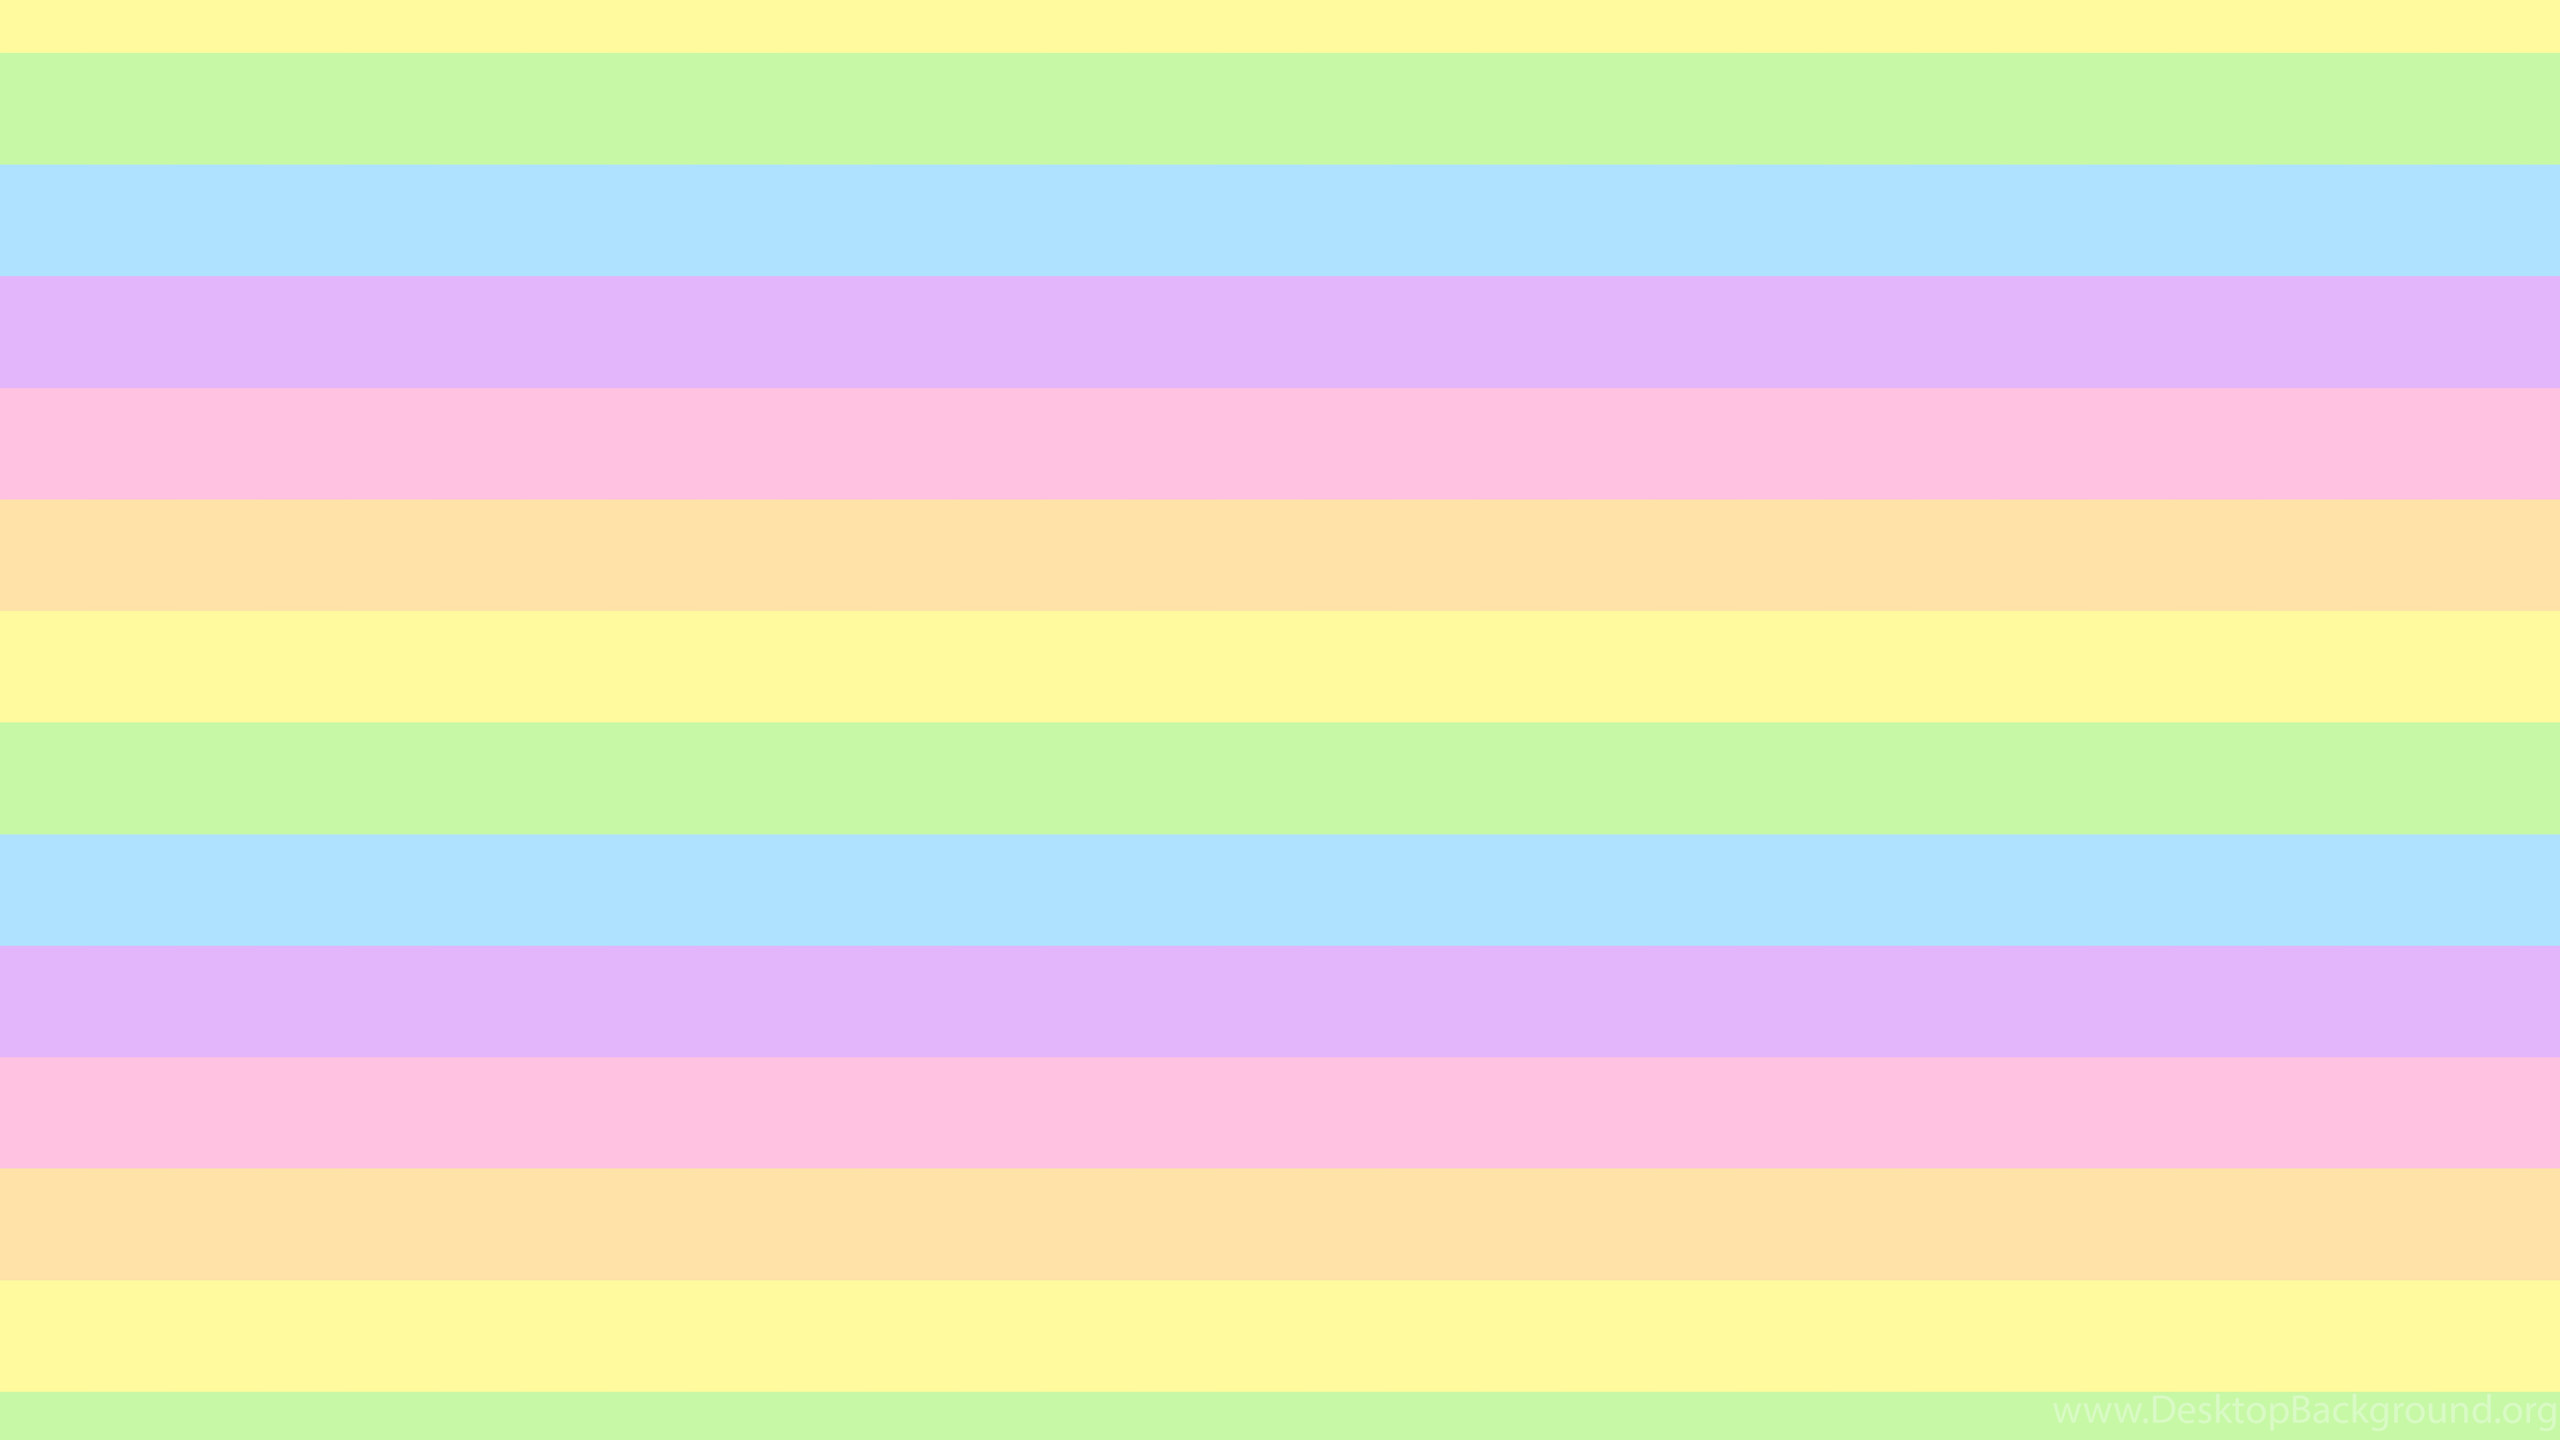 Pastel Colors Background 54 Images